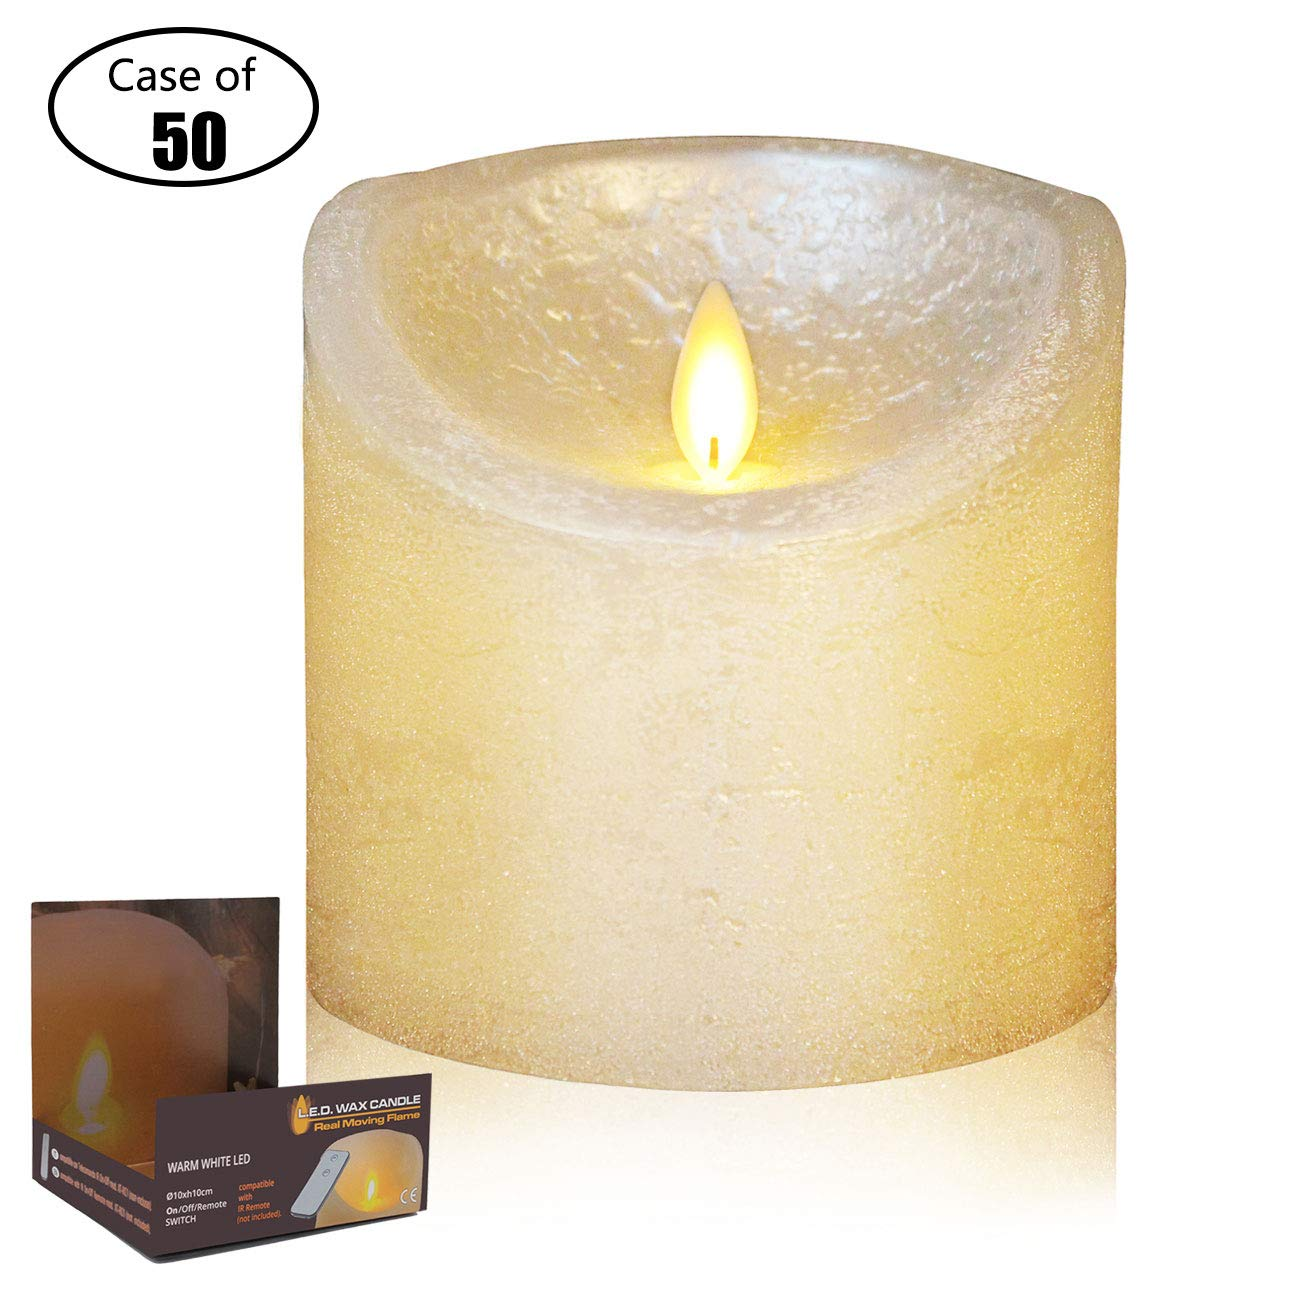 Case of 50, NB BILIGHT Dancing Flame H4'' xD4'' Battery Operated LED Candles Decorative Real Wax Pillar with Remote Control, Flameless Candles